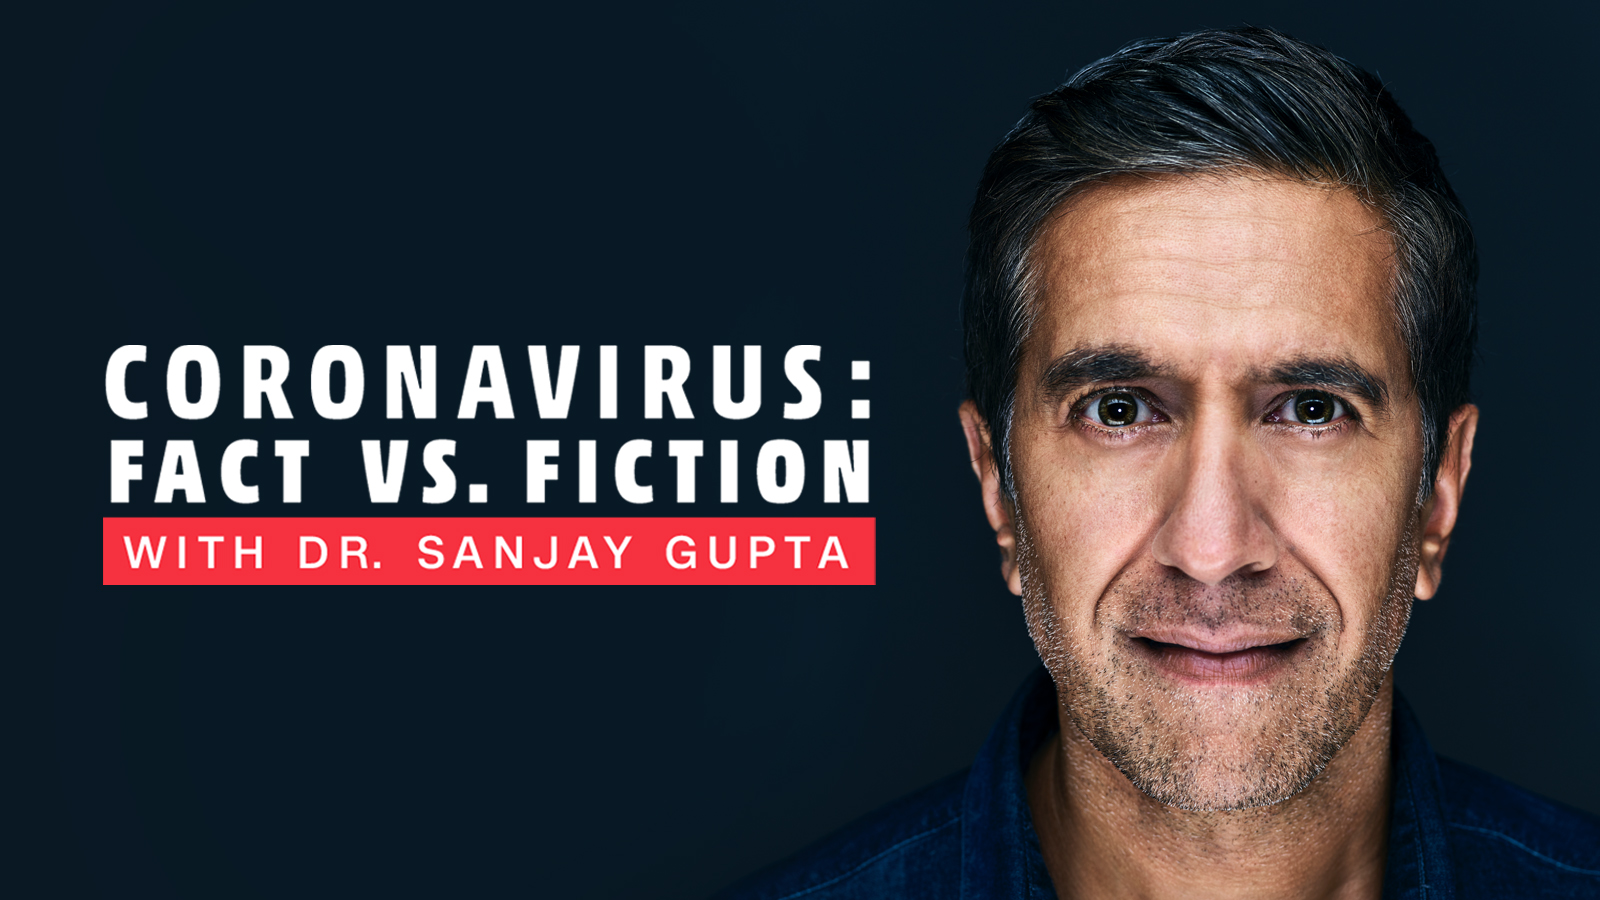 Race and Risk: Dr. Sanjay Gupta's coronavirus podcast for April 9